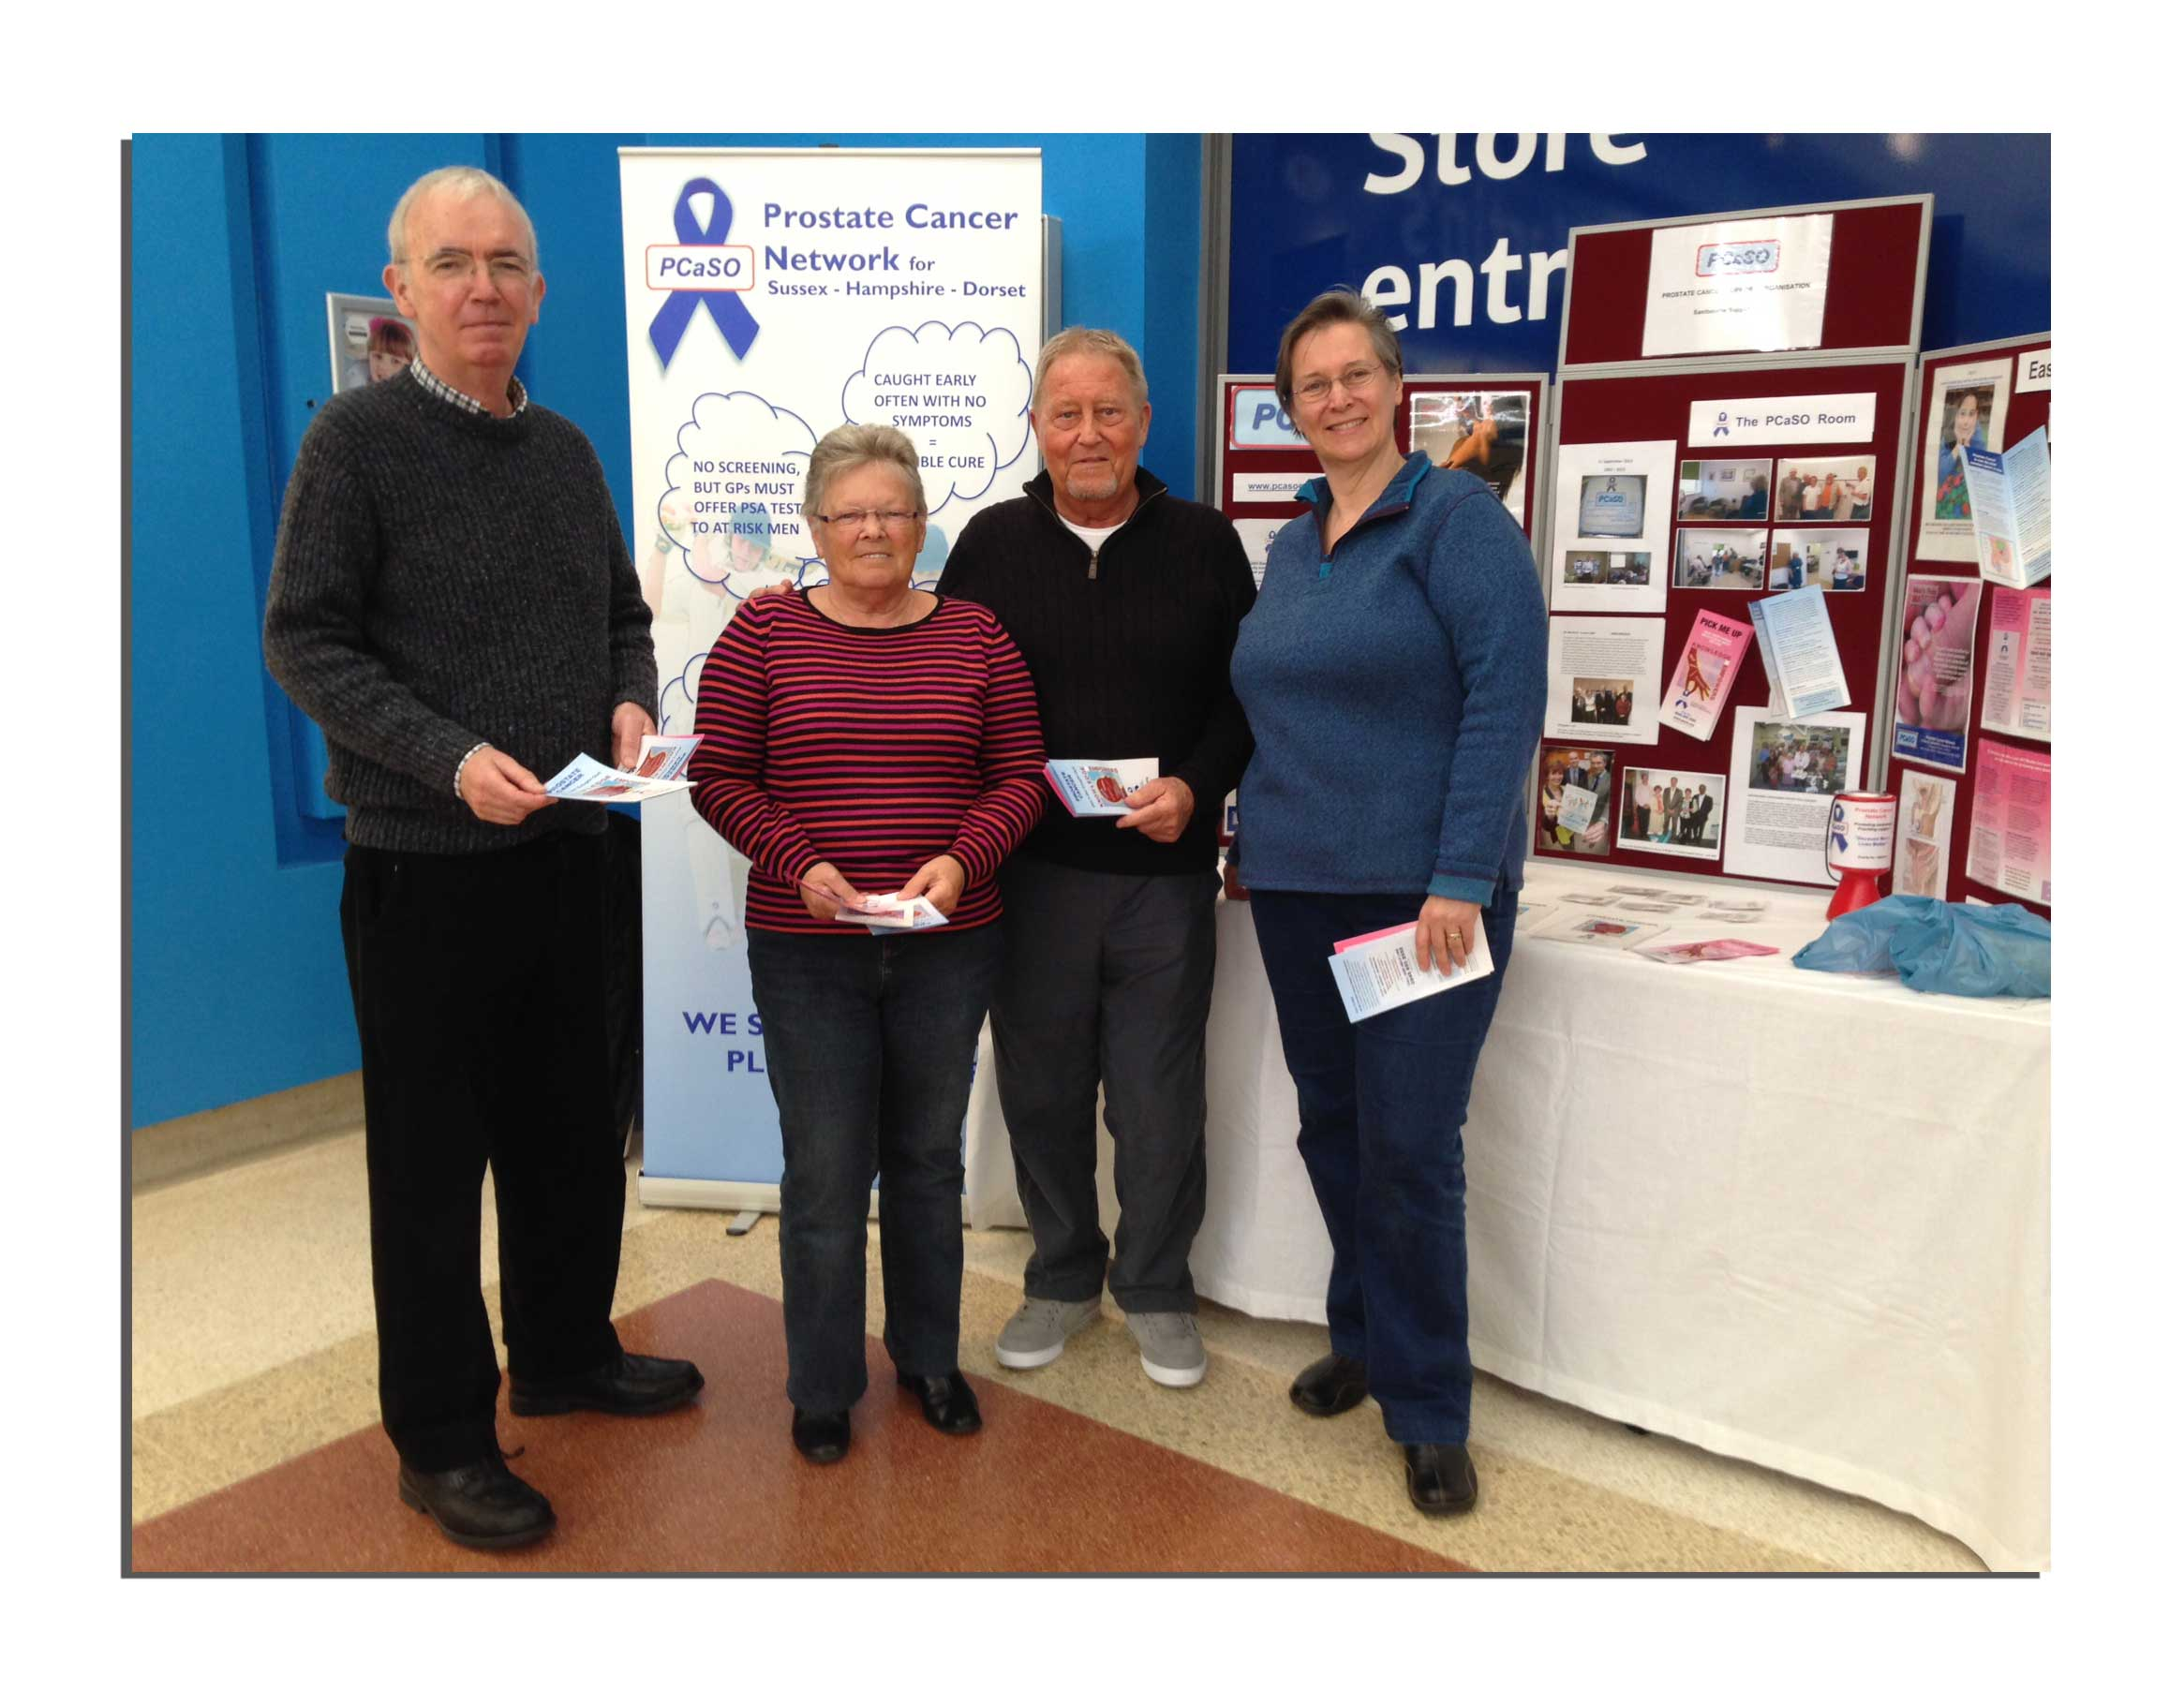 Awareness raising in the Langney shopping centre, Eastbourne